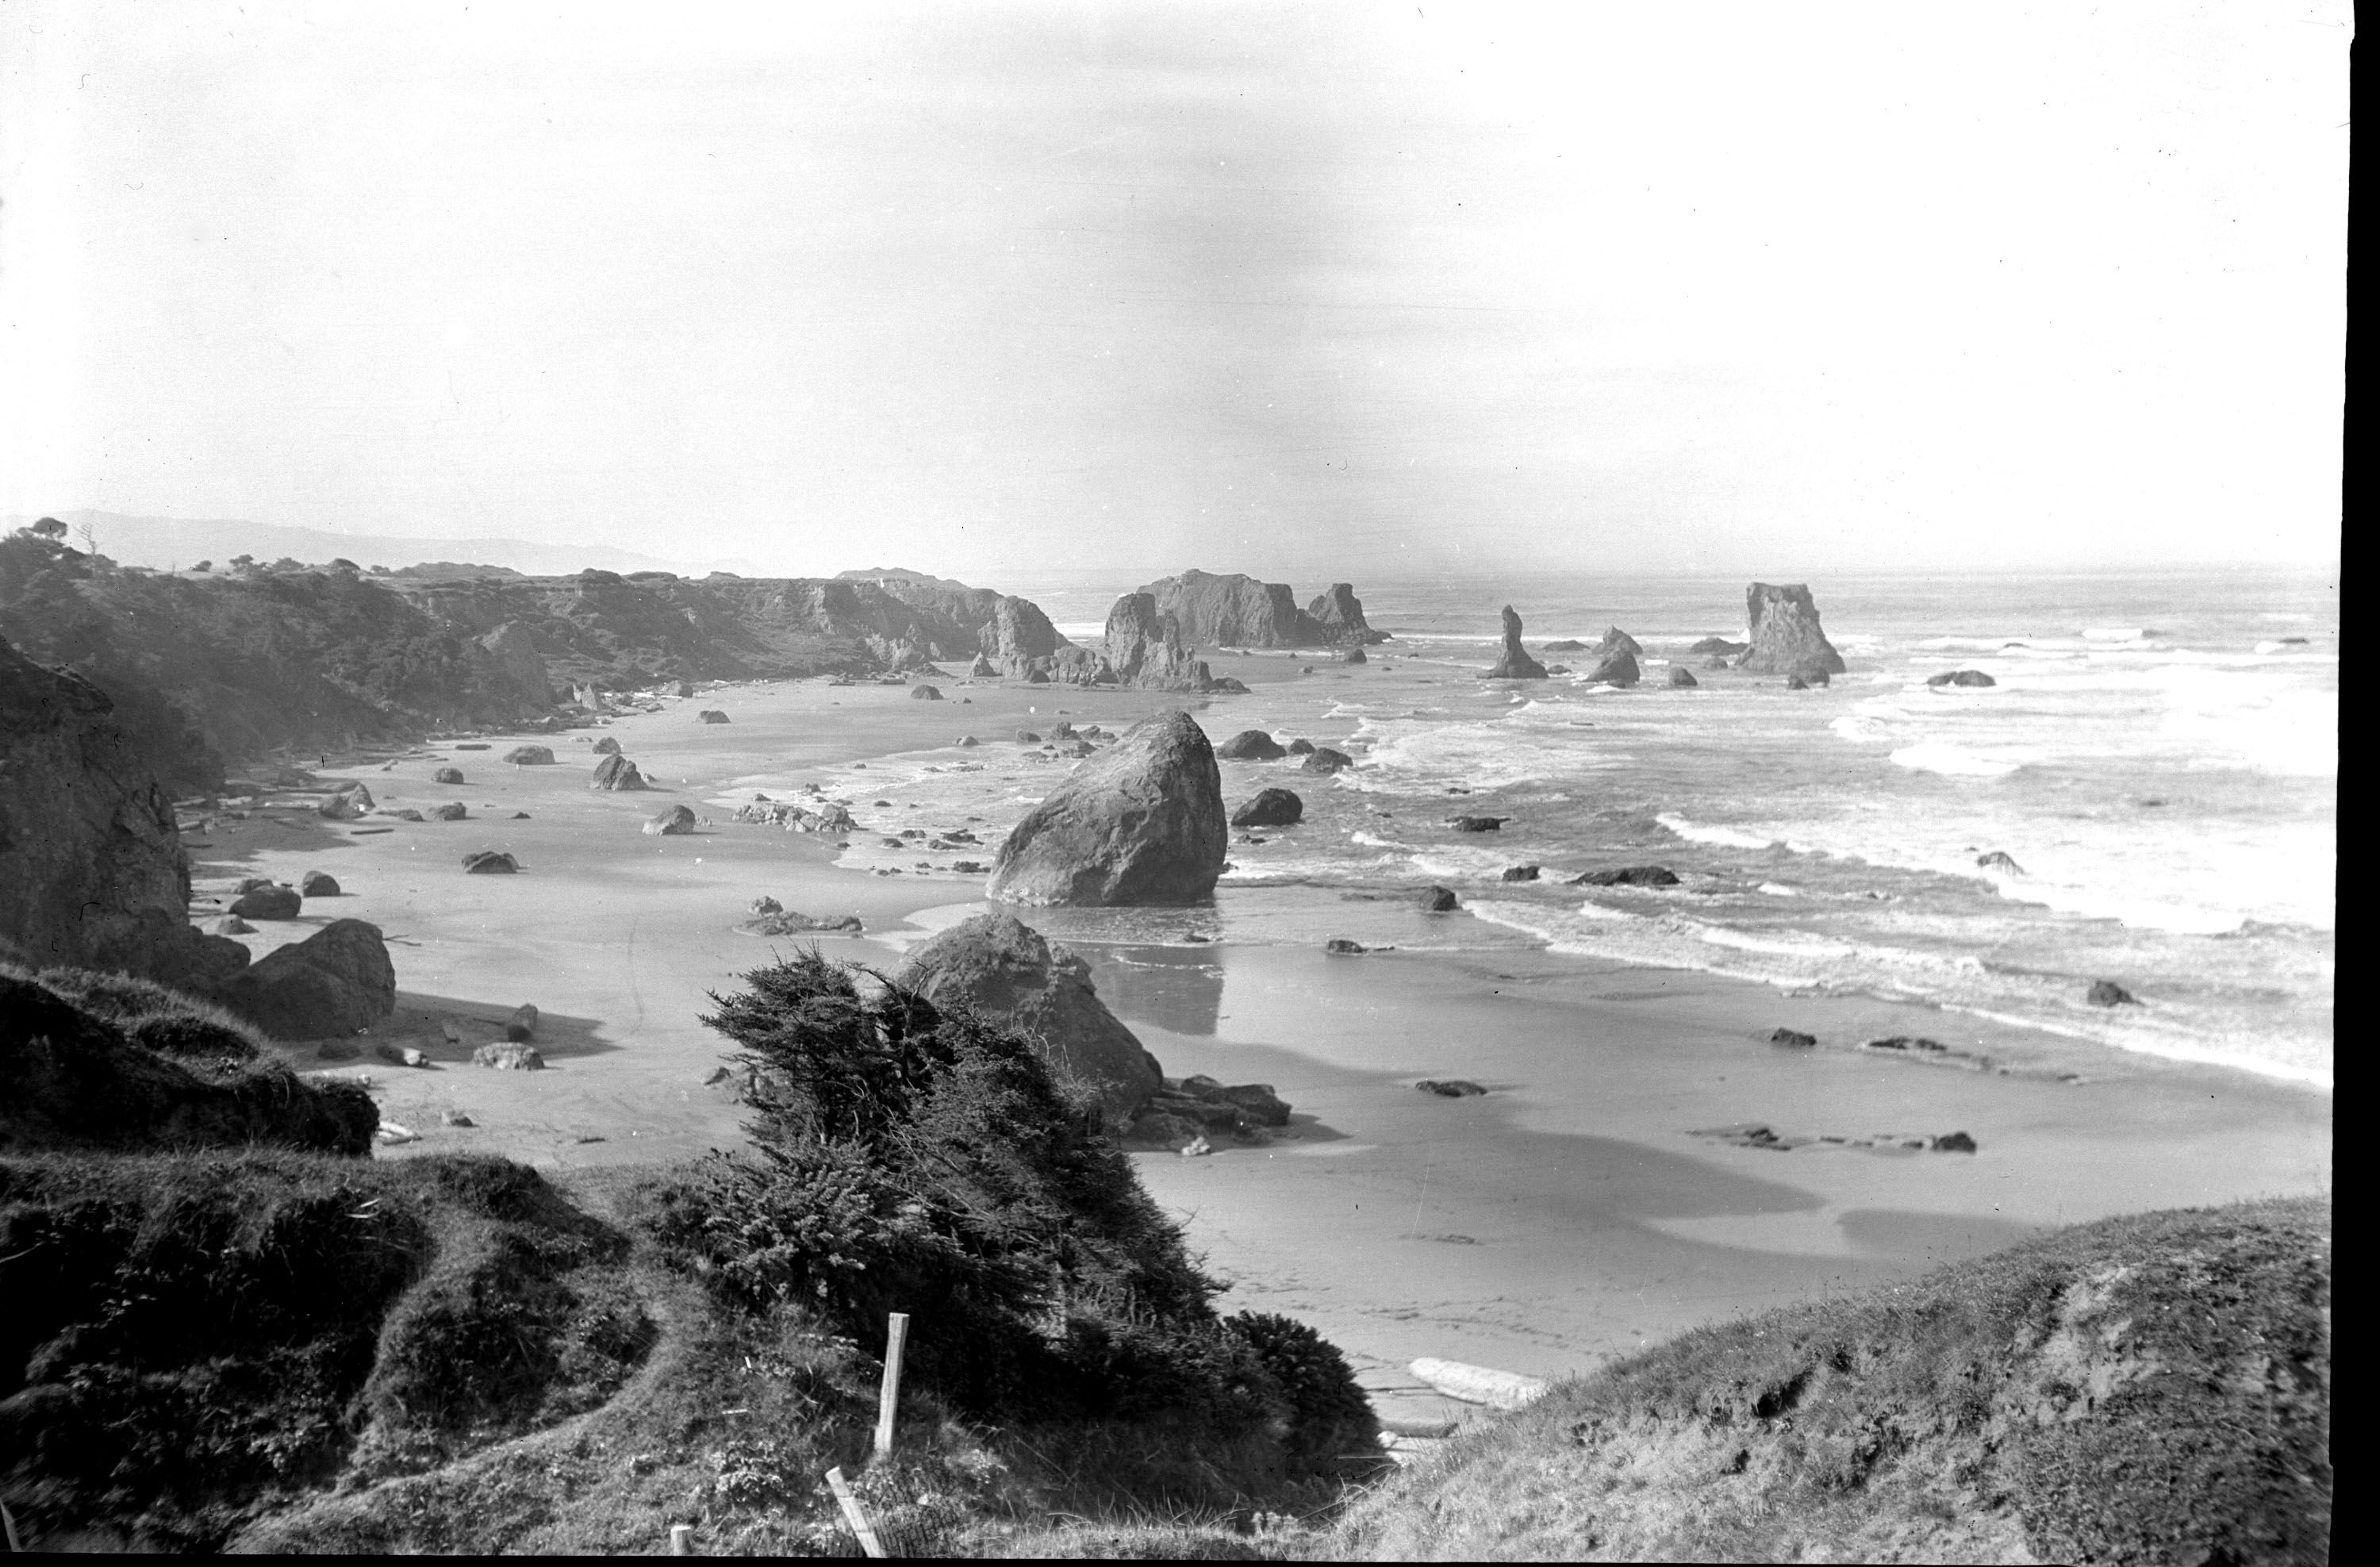 Bandon Oregon Date Unknown